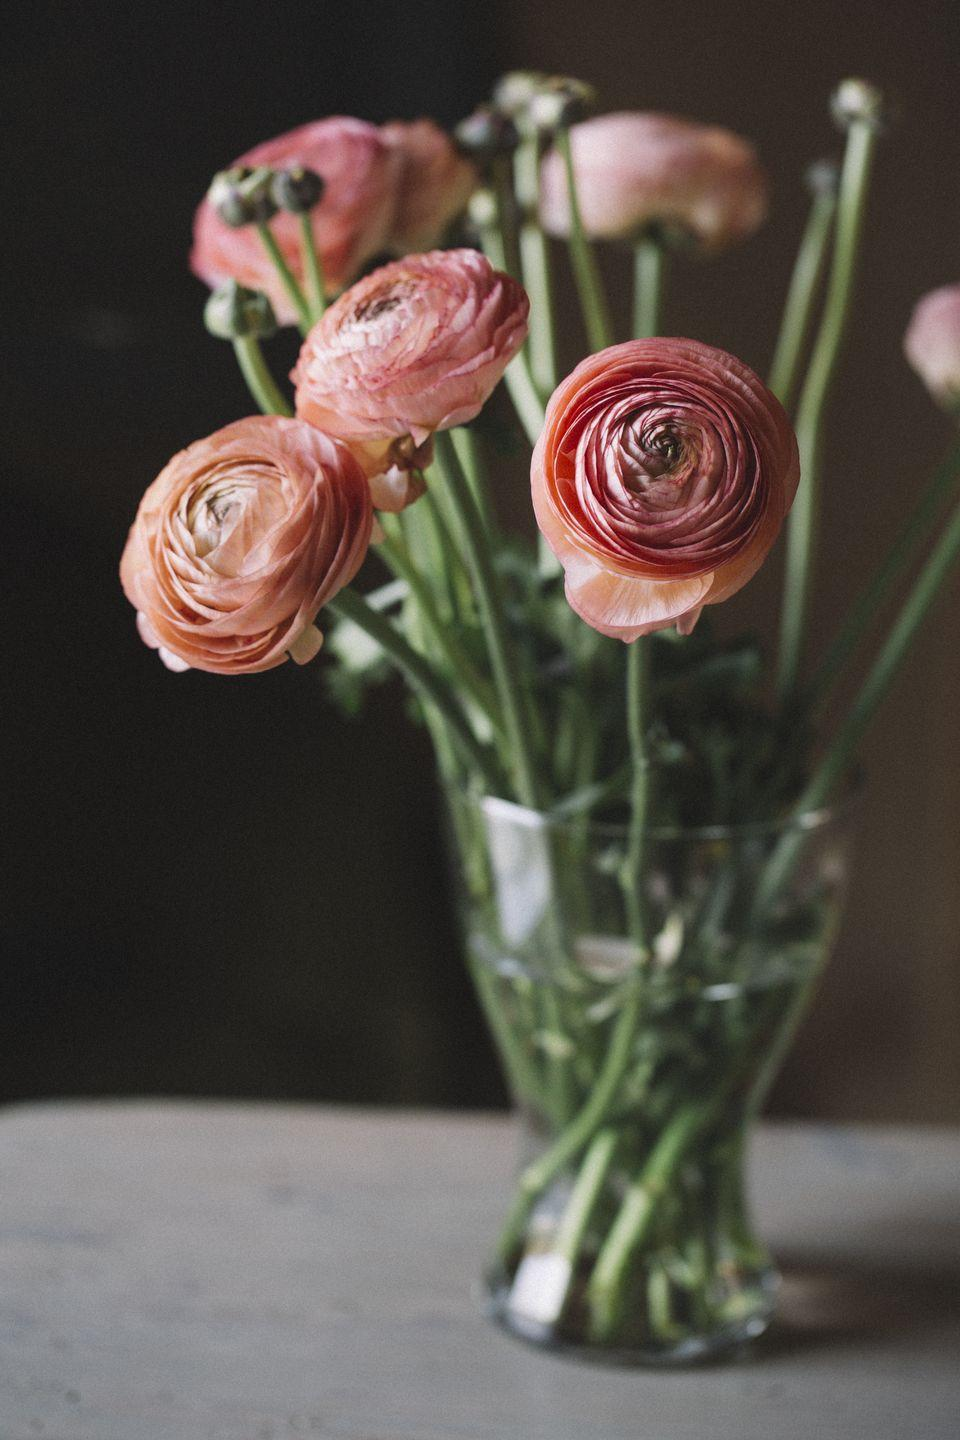 """<p>Appearing in warm, happy colors of orange, yellow, pink, red, and white, ranunculus flowers are comprised of tight circles of petals.</p><p><strong>Bloom season</strong>: Summer</p><p><a class=""""link rapid-noclick-resp"""" href=""""https://go.redirectingat.com?id=74968X1596630&url=https%3A%2F%2Fwww.homedepot.com%2Fp%2FVan-Zyverden-Butter-Cups-Ranunculus-Double-Pink-Bulbs-Set-of-25-833221%2F301135441&sref=https%3A%2F%2Fwww.countryliving.com%2Fgardening%2Fg36596951%2Fbeautiful-flower-images%2F"""" rel=""""nofollow noopener"""" target=""""_blank"""" data-ylk=""""slk:SHOP RANUNCULUS"""">SHOP RANUNCULUS</a></p>"""